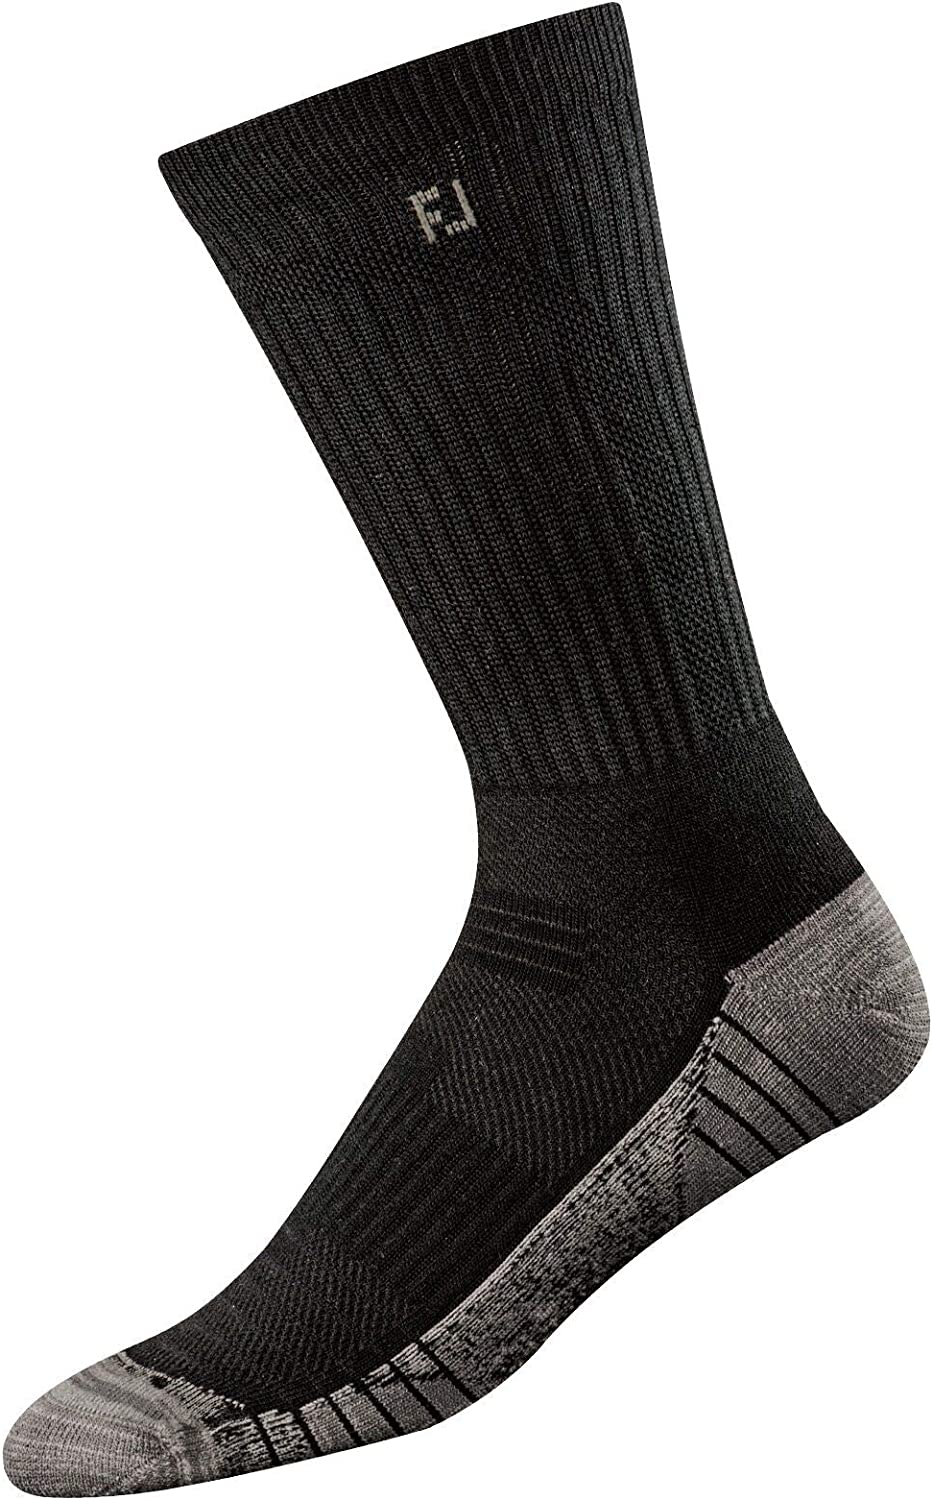 FootJoy Men's TechSof Tour Crew Socks Black Size 7-12